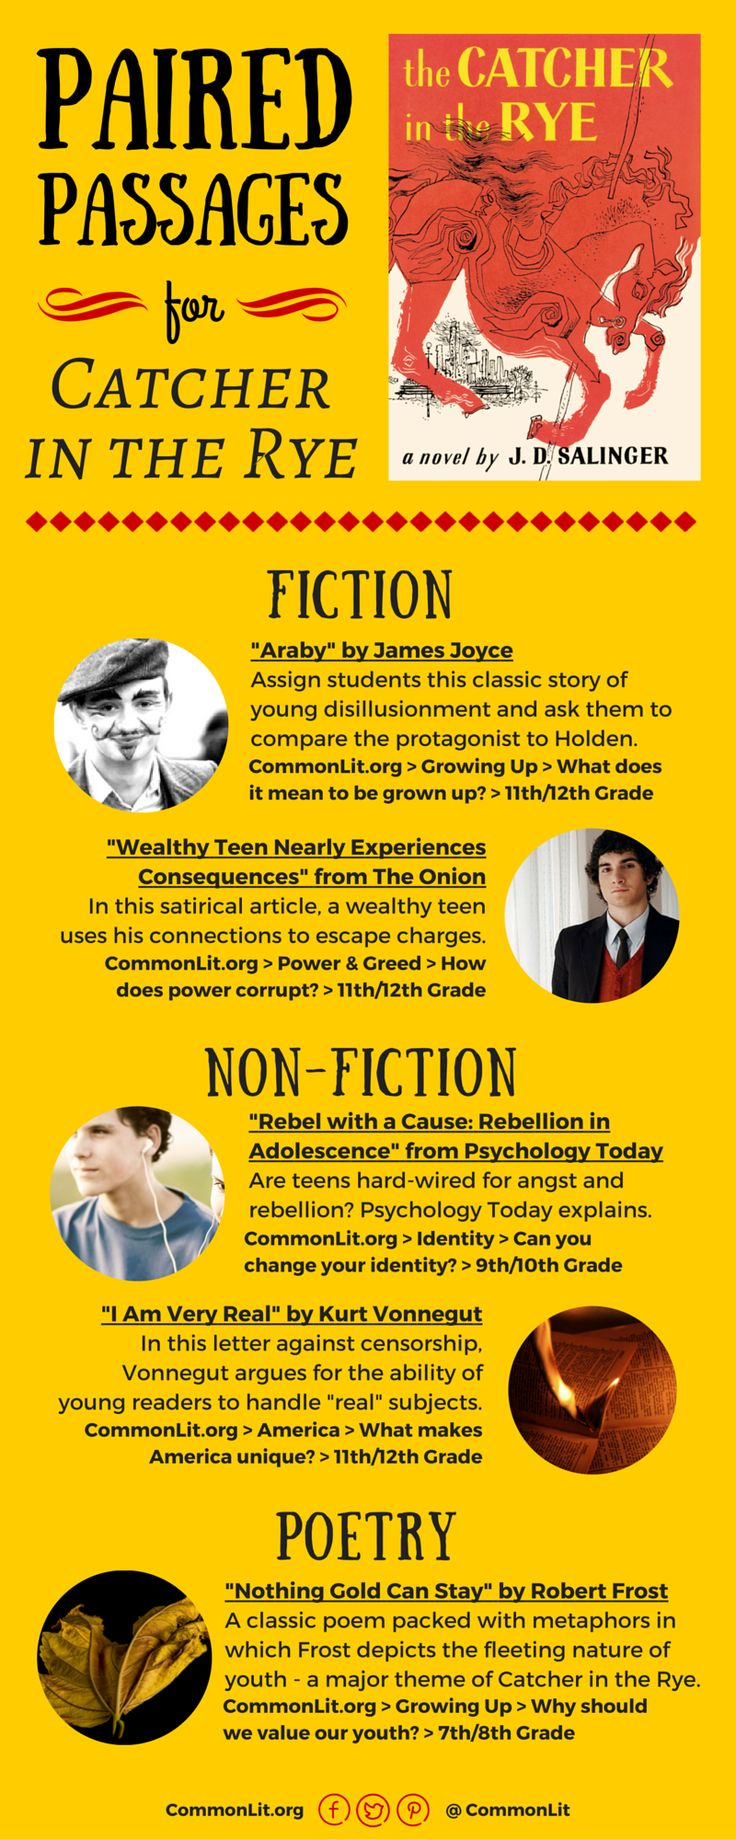 an analysis of the language in the catcher in the rye The catcher in the rye  is told in holden's own strange, wonderful  language by j d salinger in an unusually brilliant novel, the catcher in the  rye.